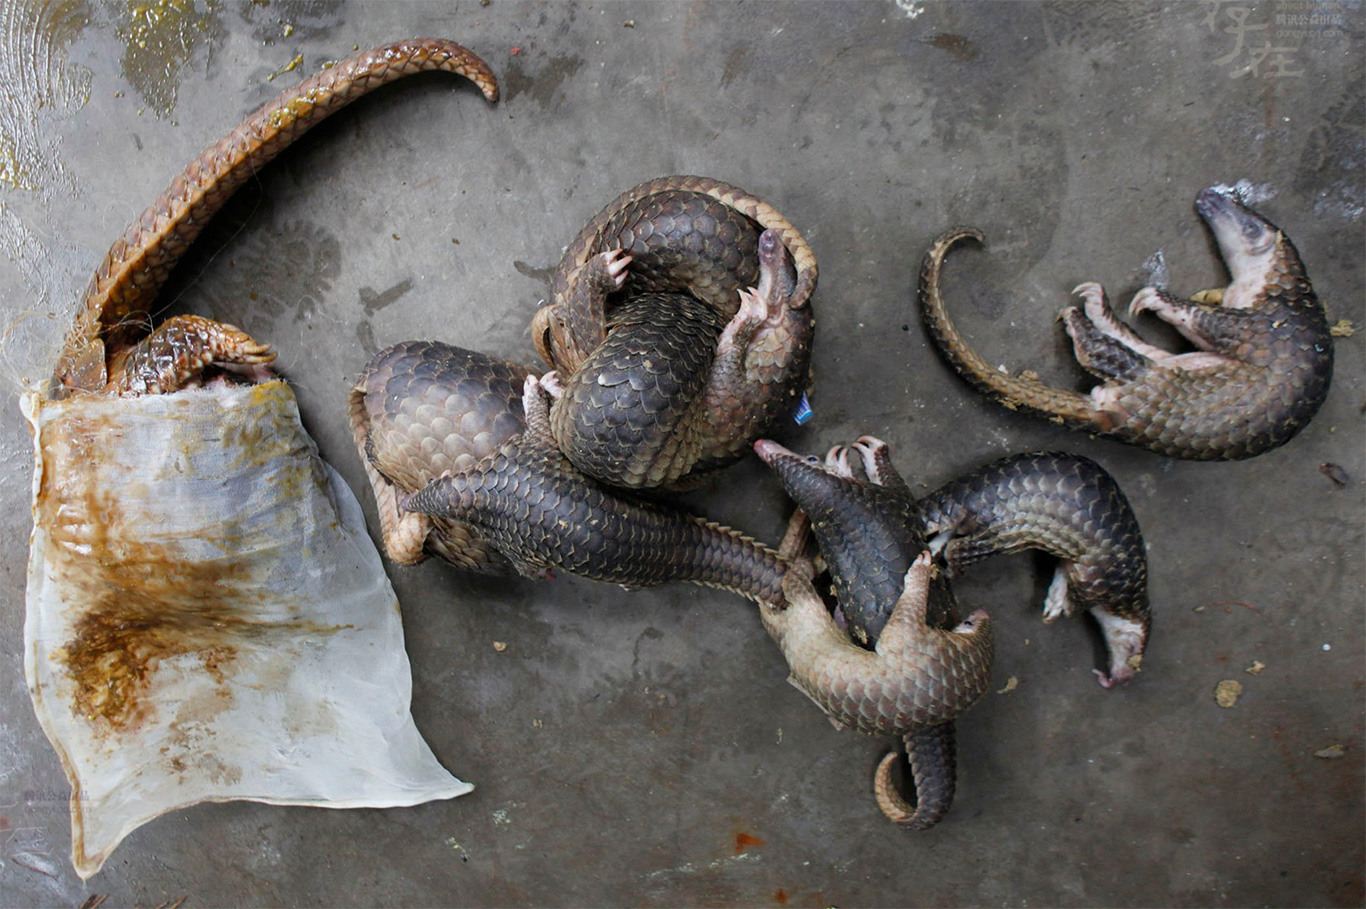 Pangolin purgatory! Chopped, diced and eaten to extinction!